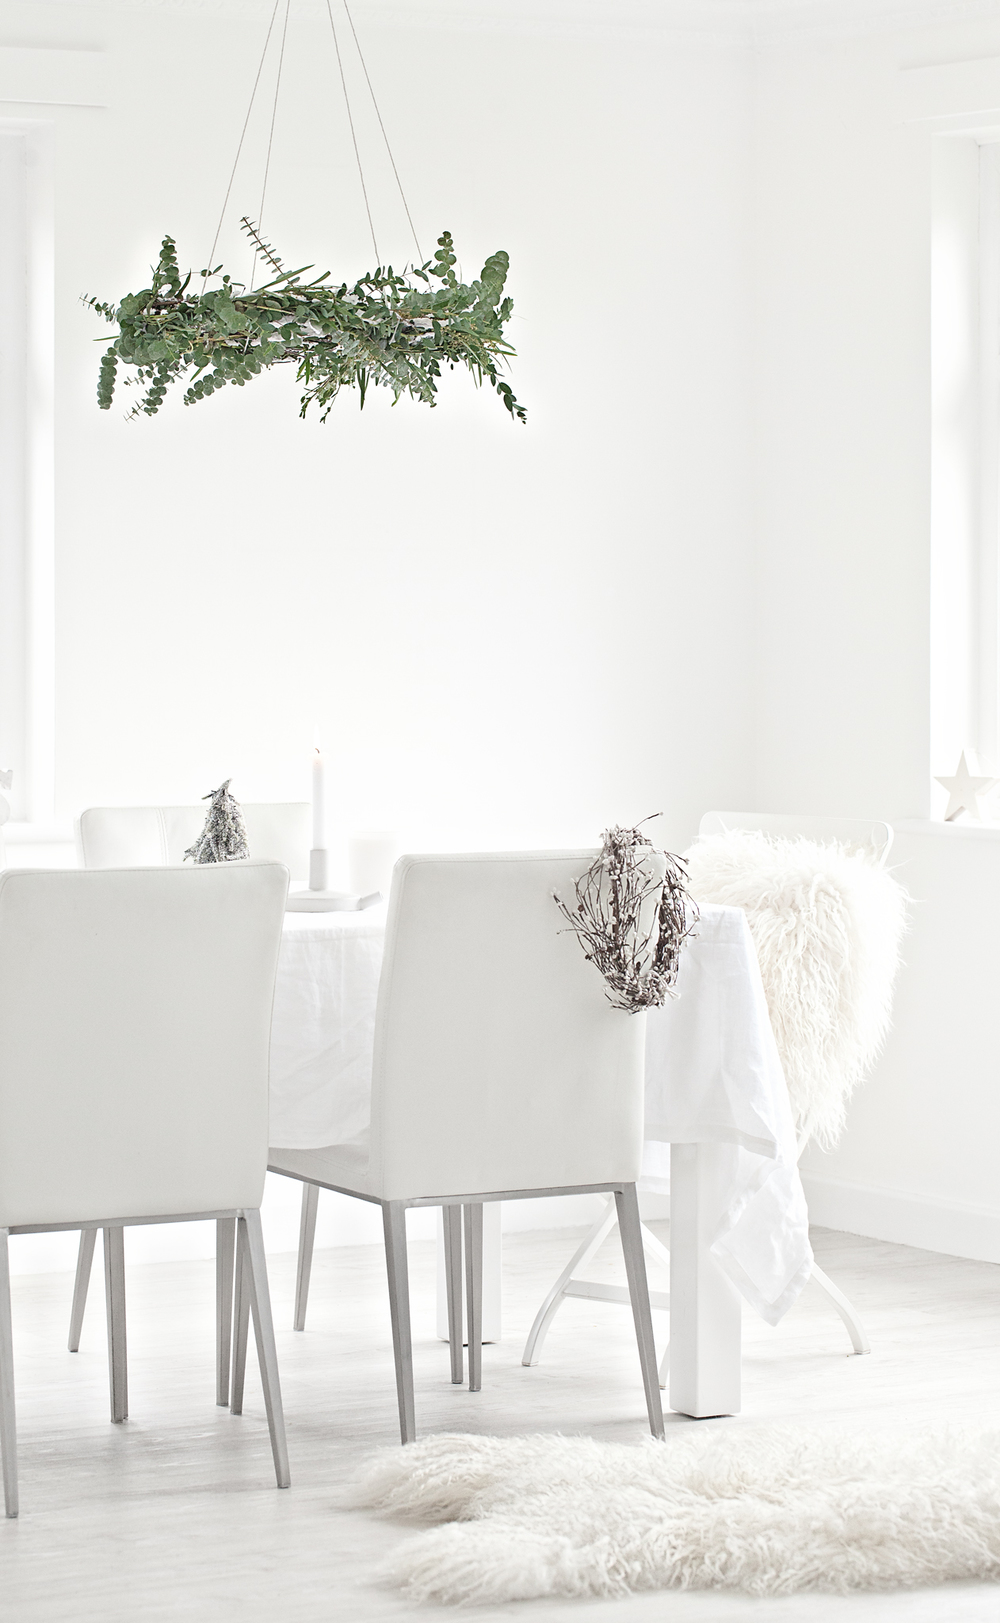 White Linen table cloth from   The White Company   | White Ceramic   Serax   Candle Holder from   istome   | White Icelandic Sheepskin Rug & Cushion from   Milabert